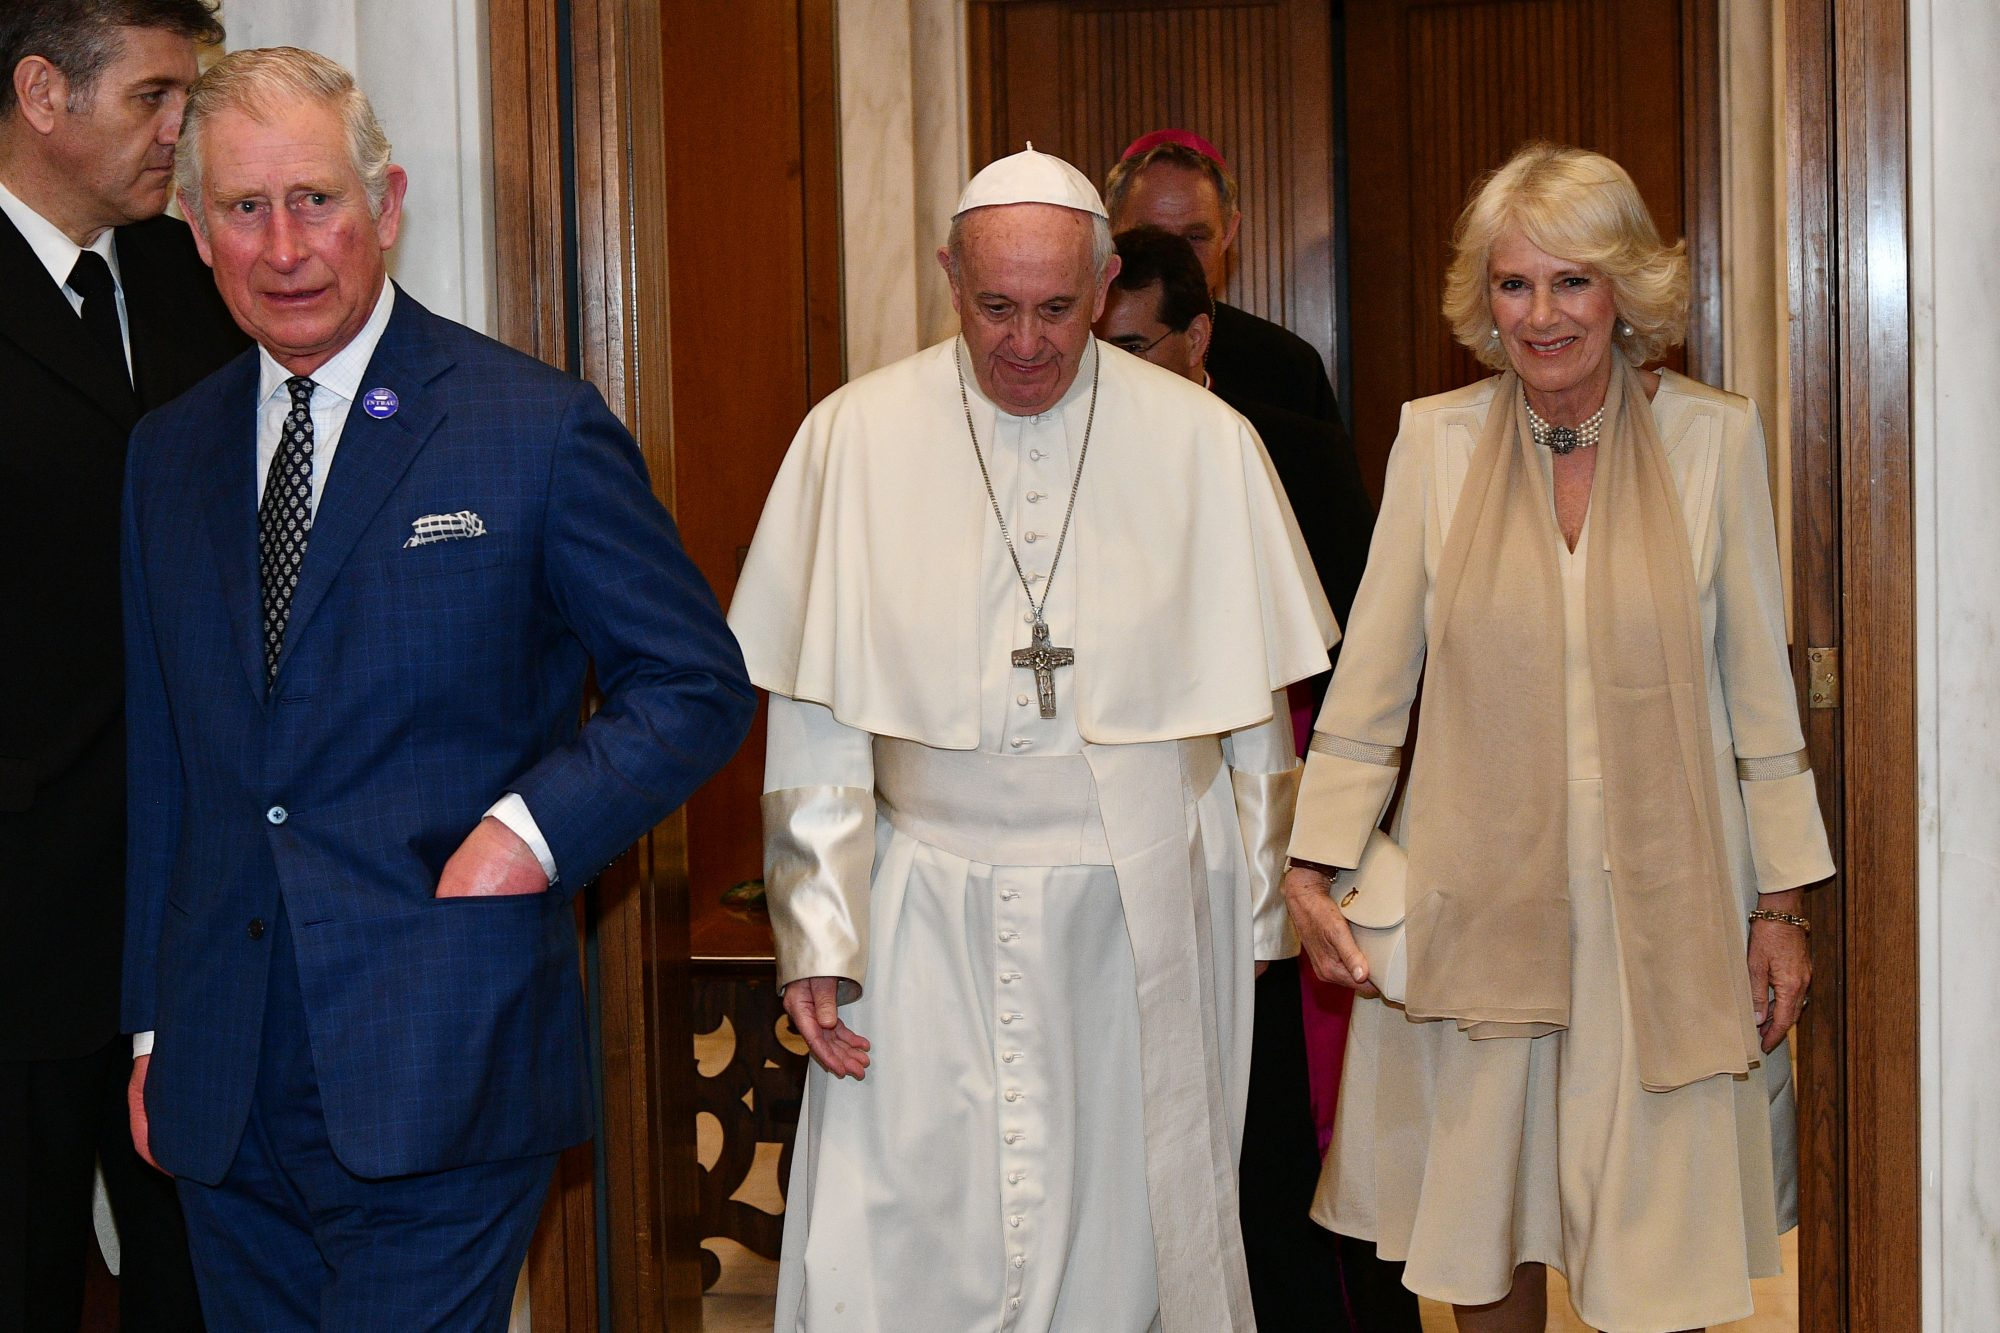 VATICAN-POPE-AUDIENCE-BRITAIN-ROYALS